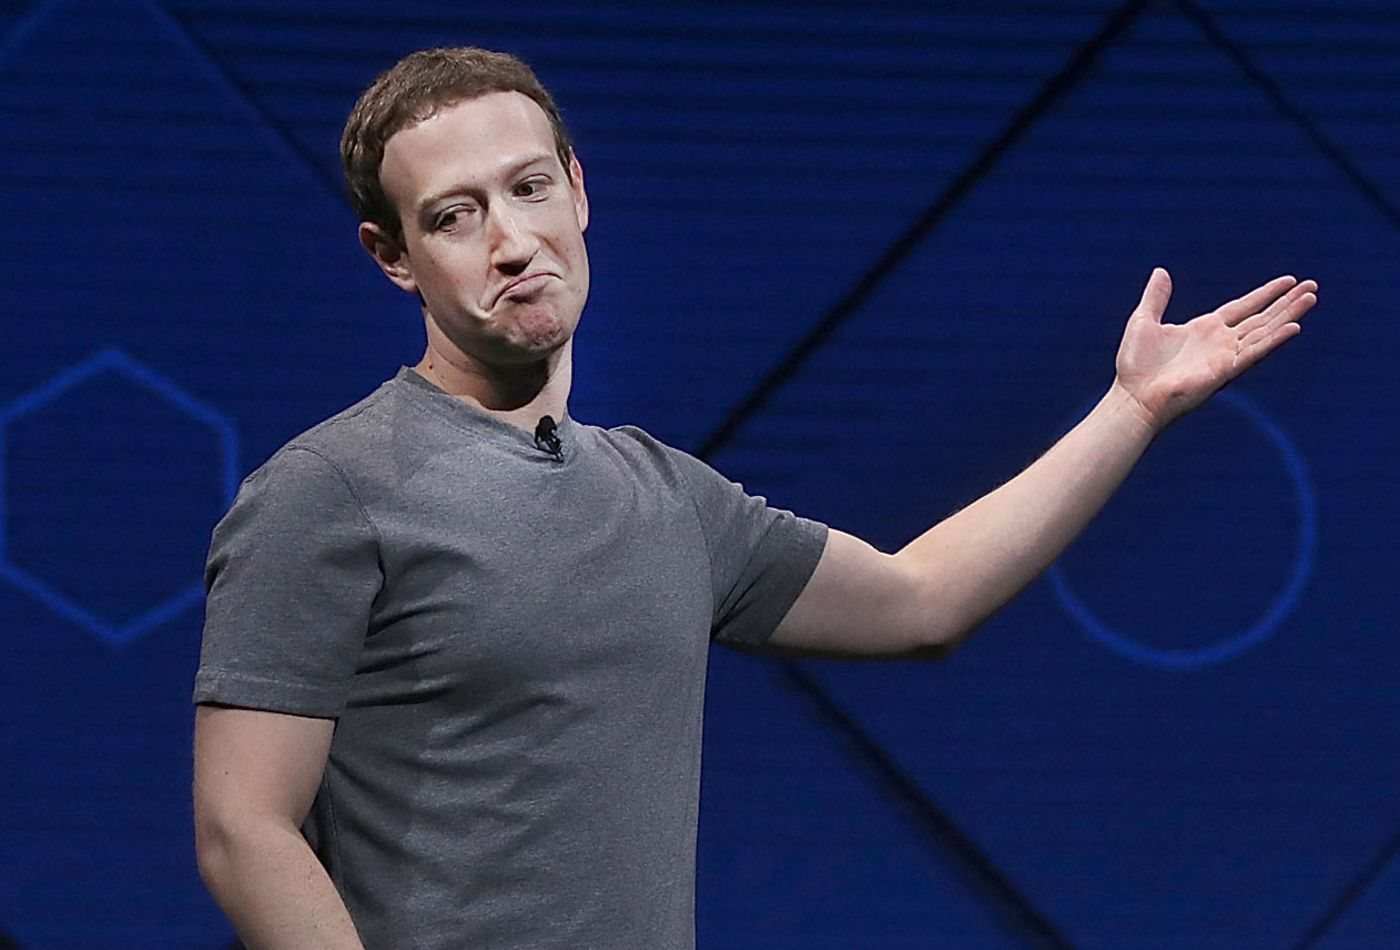 Facebook is unexpectedly developing a device that can read minds.